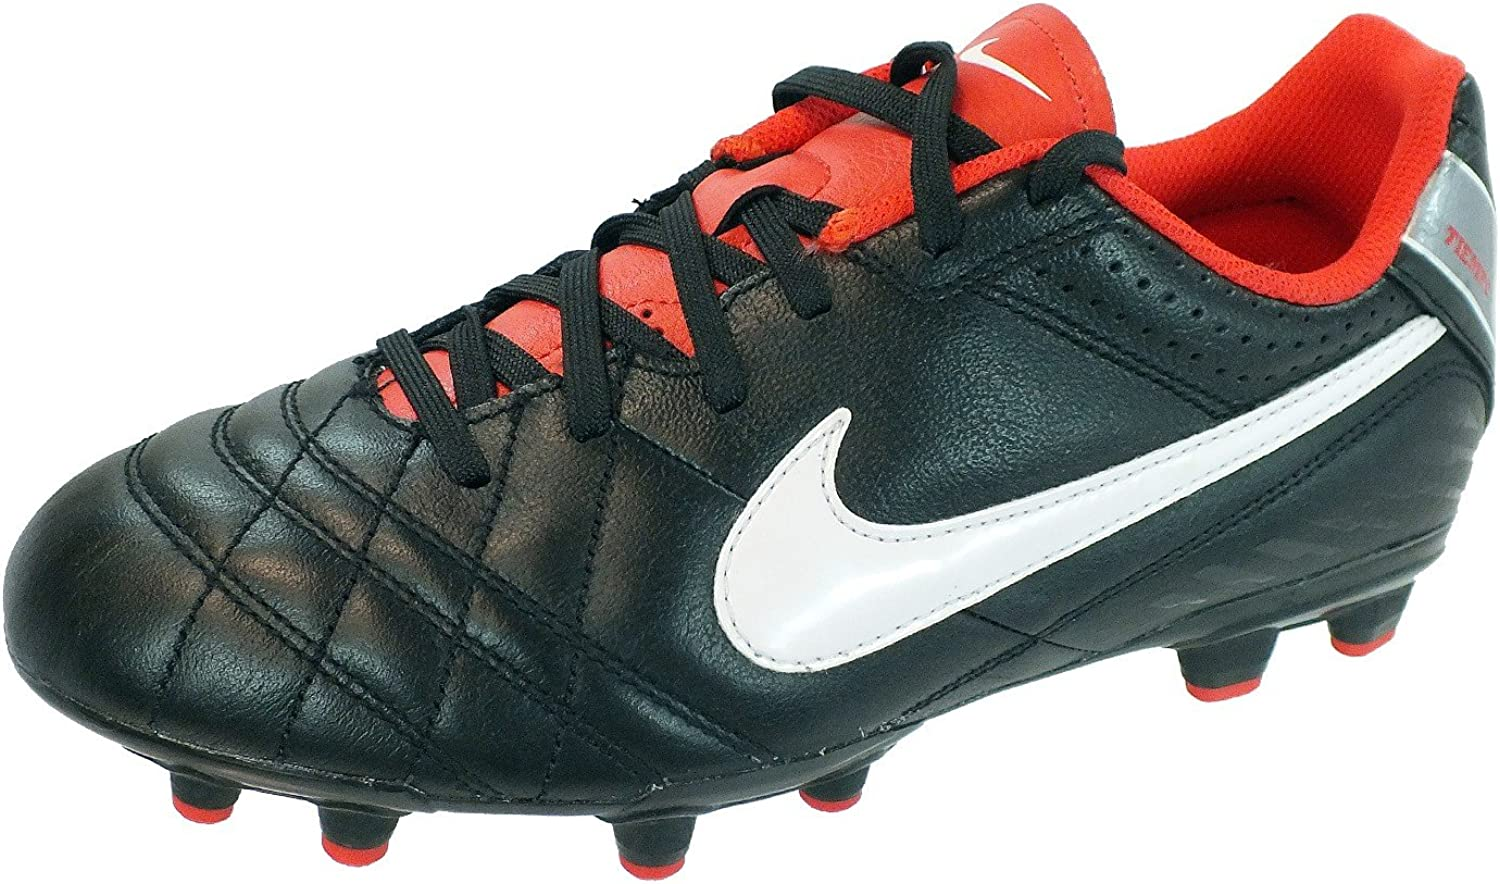 R Torbellino Cervecería  Nike football boots, Junior Tiempo Natural IV LTR FG, in black. Black Size:  3.5 UK: Amazon.co.uk: Shoes & Bags